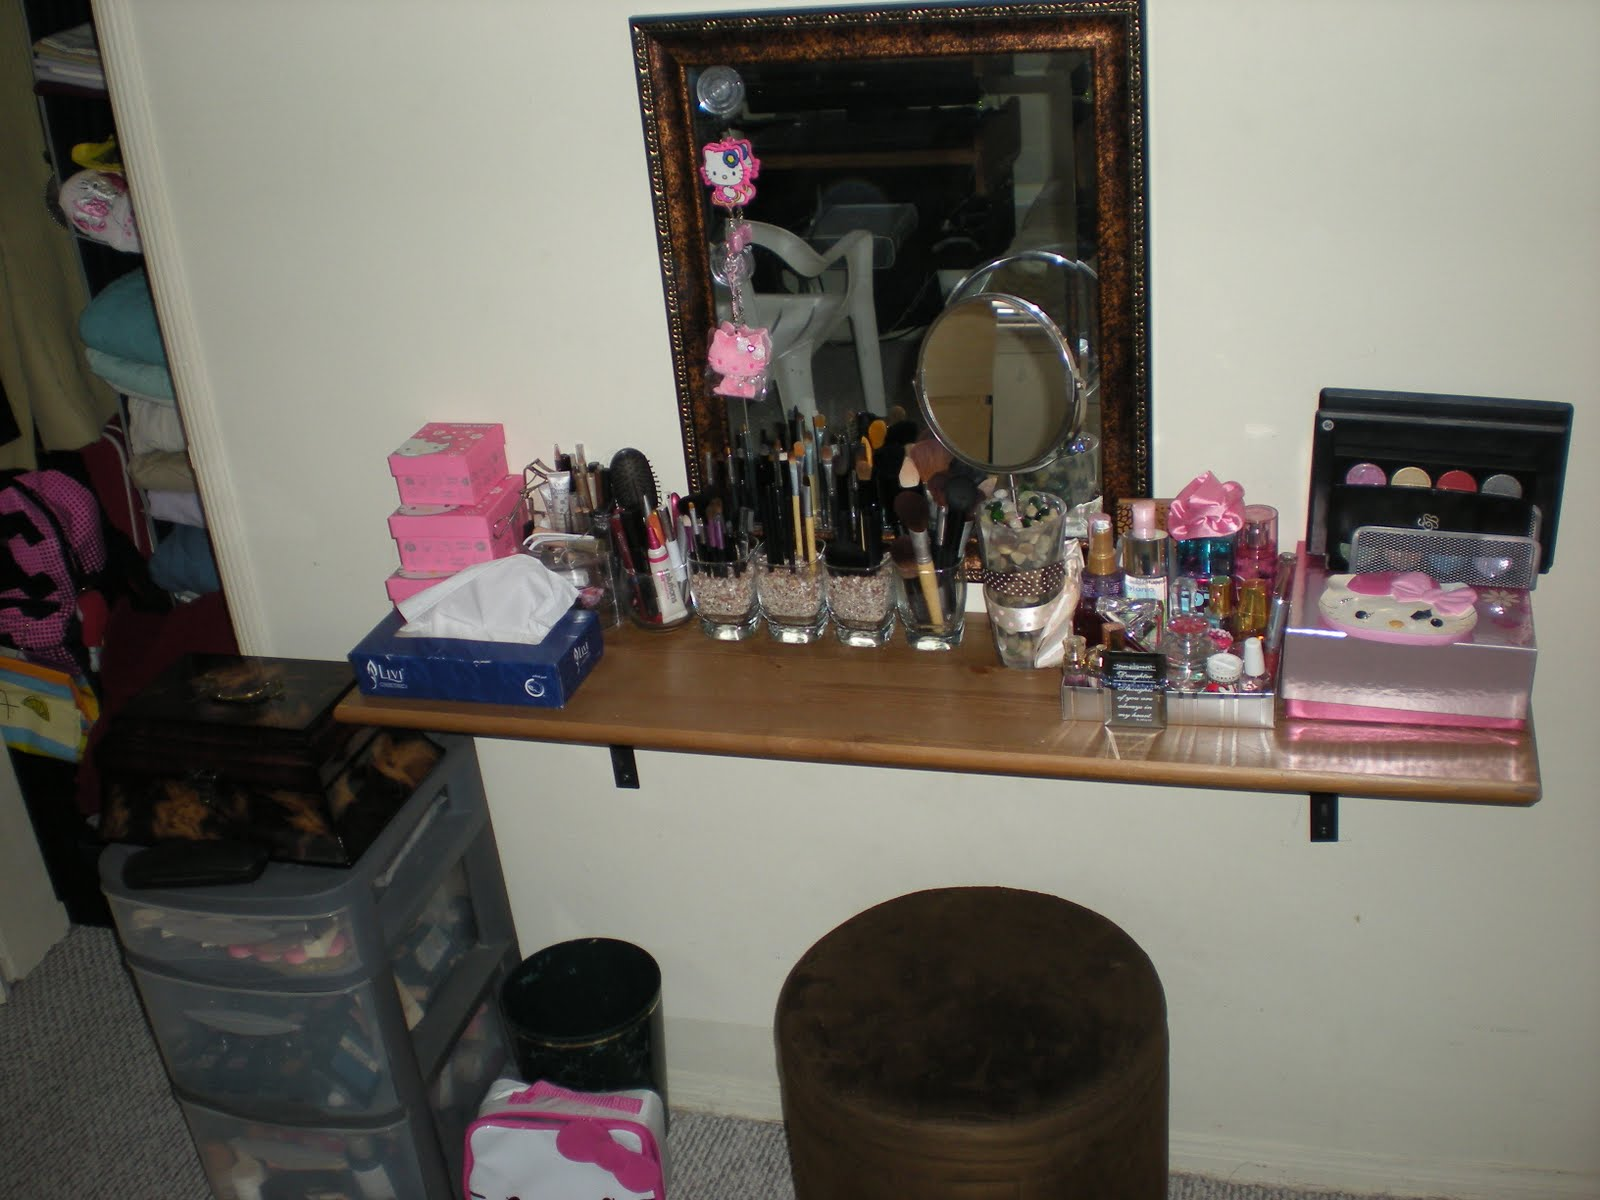 DIY Vanity Tables http://theadorabubble.blogspot.com/2010/06/vanity-make-up-table-diy.html